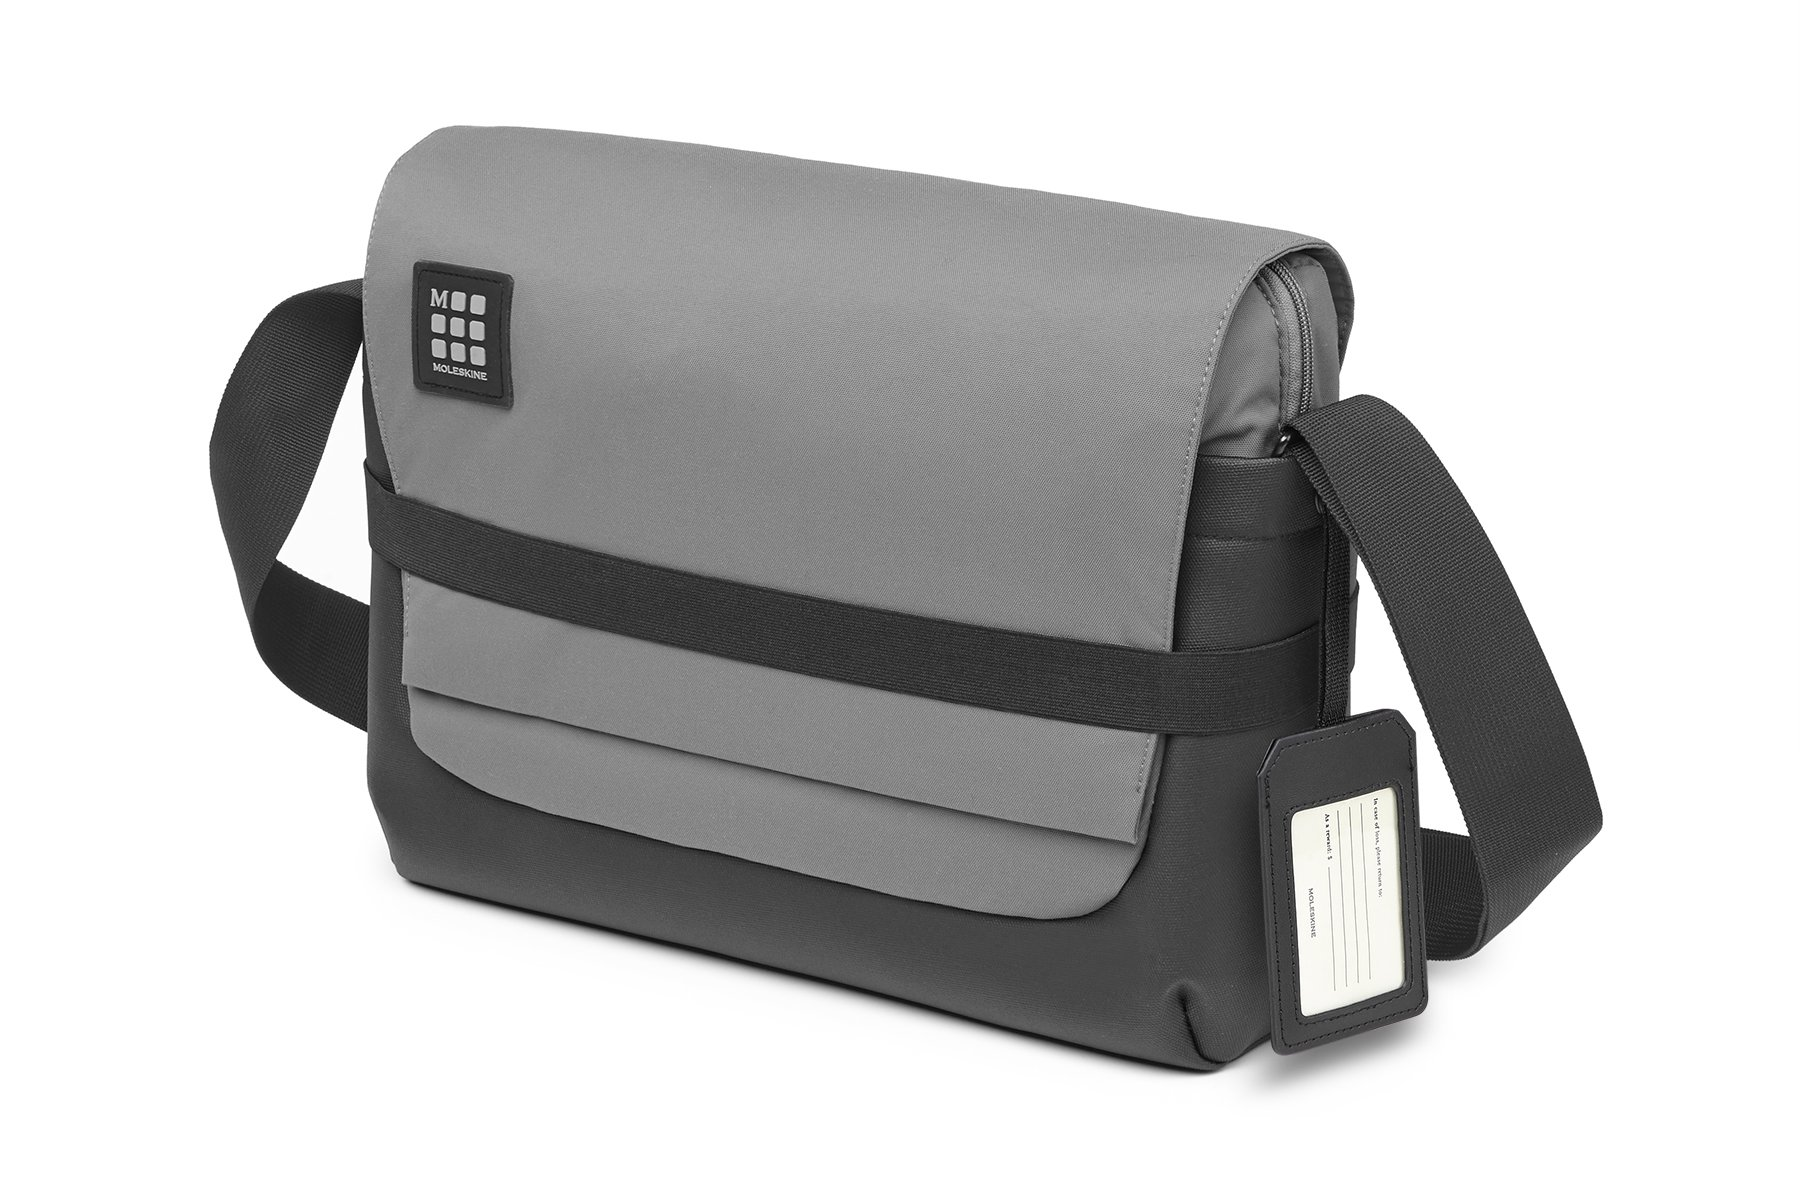 Moleskine ID Messenger Bag Slate Grey, For Work, School, Travel, and Everyday Use, Space for Devices Tablet Laptop and Chargers, Notebook Planner or Organizer, Padded Adjustable Straps, Zipper Pocket